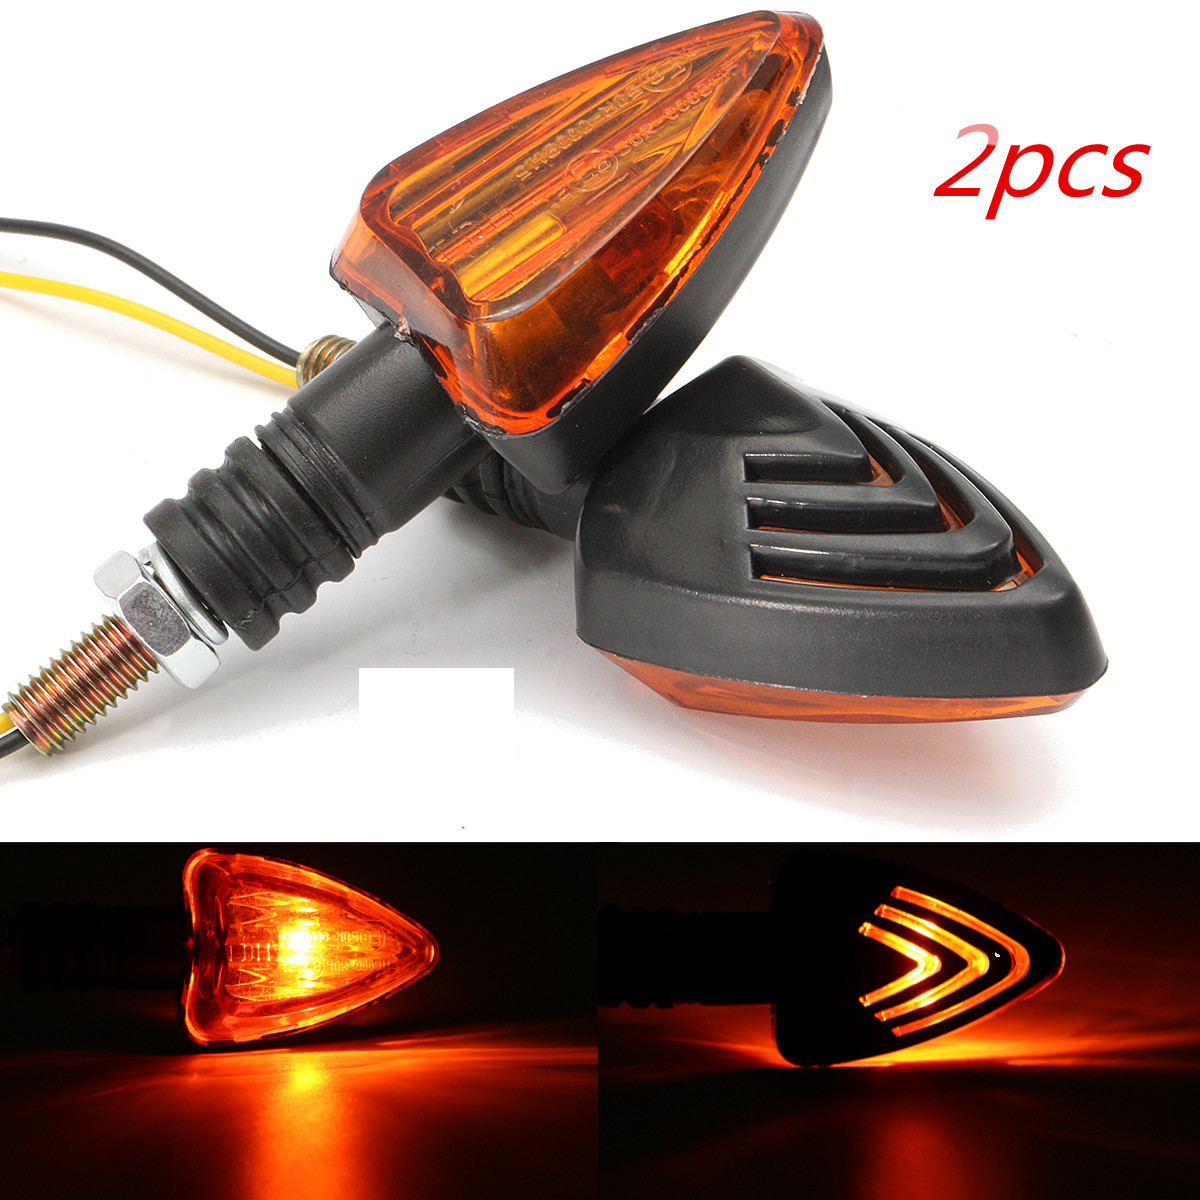 2x Amber Light Motorcycle Turn Signal Indicator Light Bulb V2